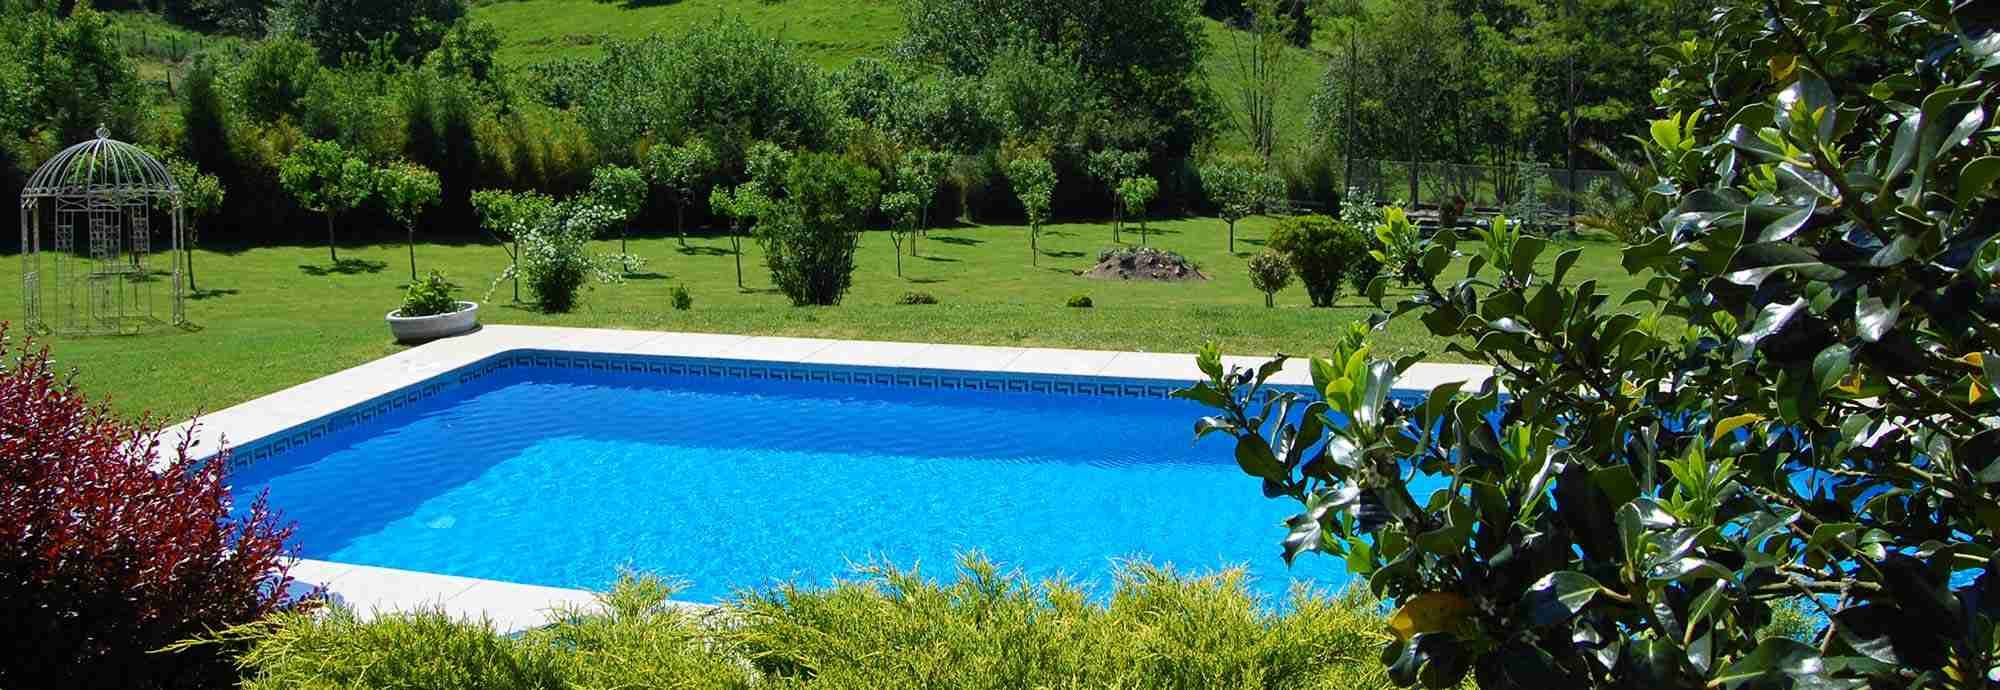 Holiday  Villas in Northern Spain with Pools